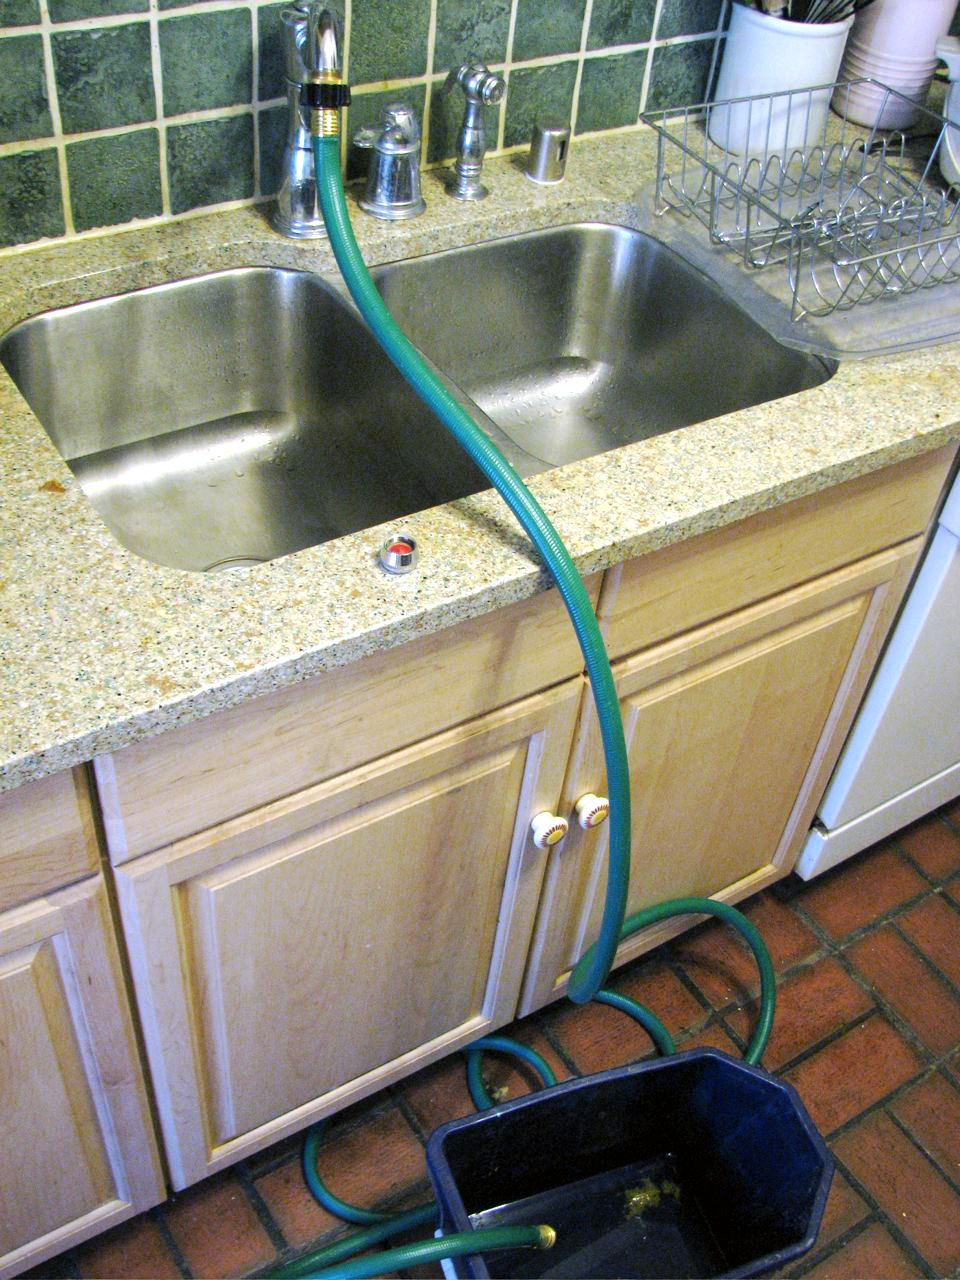 Attach a Garden Hose to a Kitchen Faucet | Garden hose, Kitchen ...